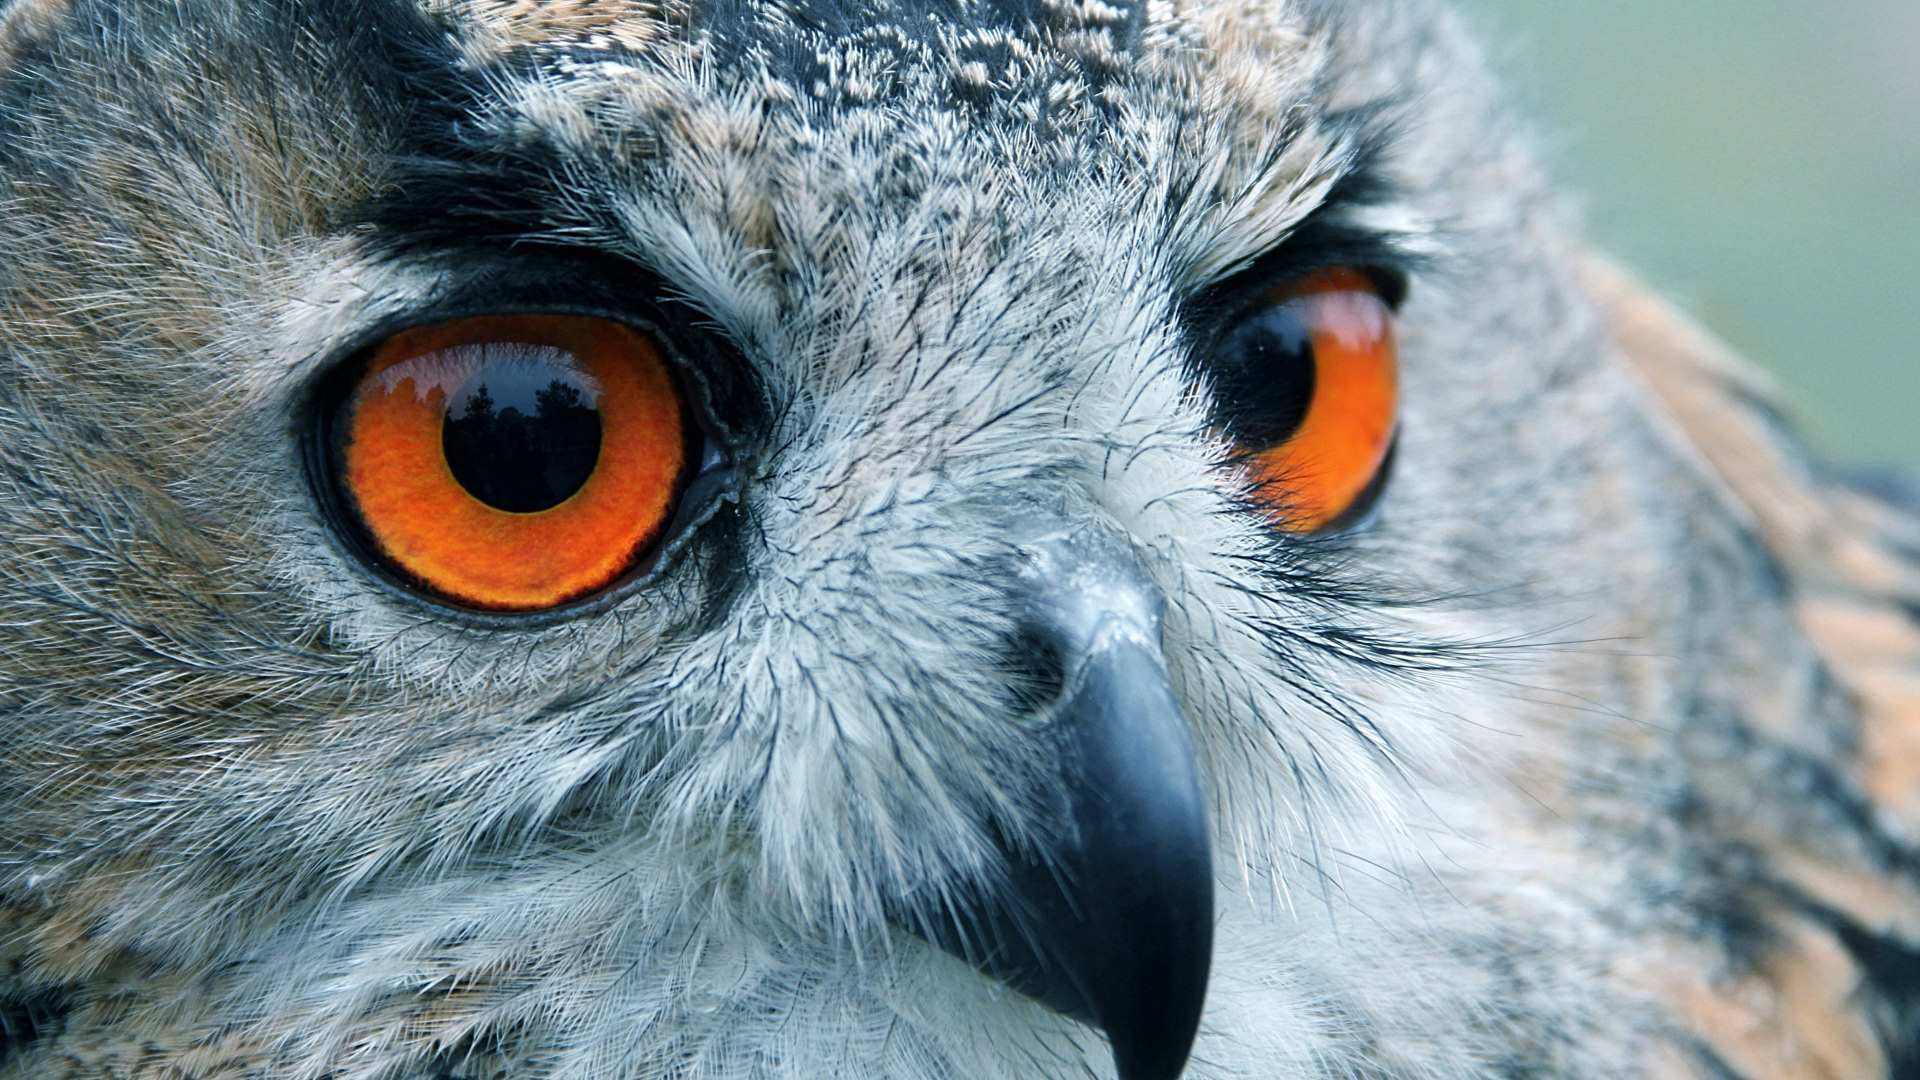 Owl Eyes Wallpaper Wallpup Com